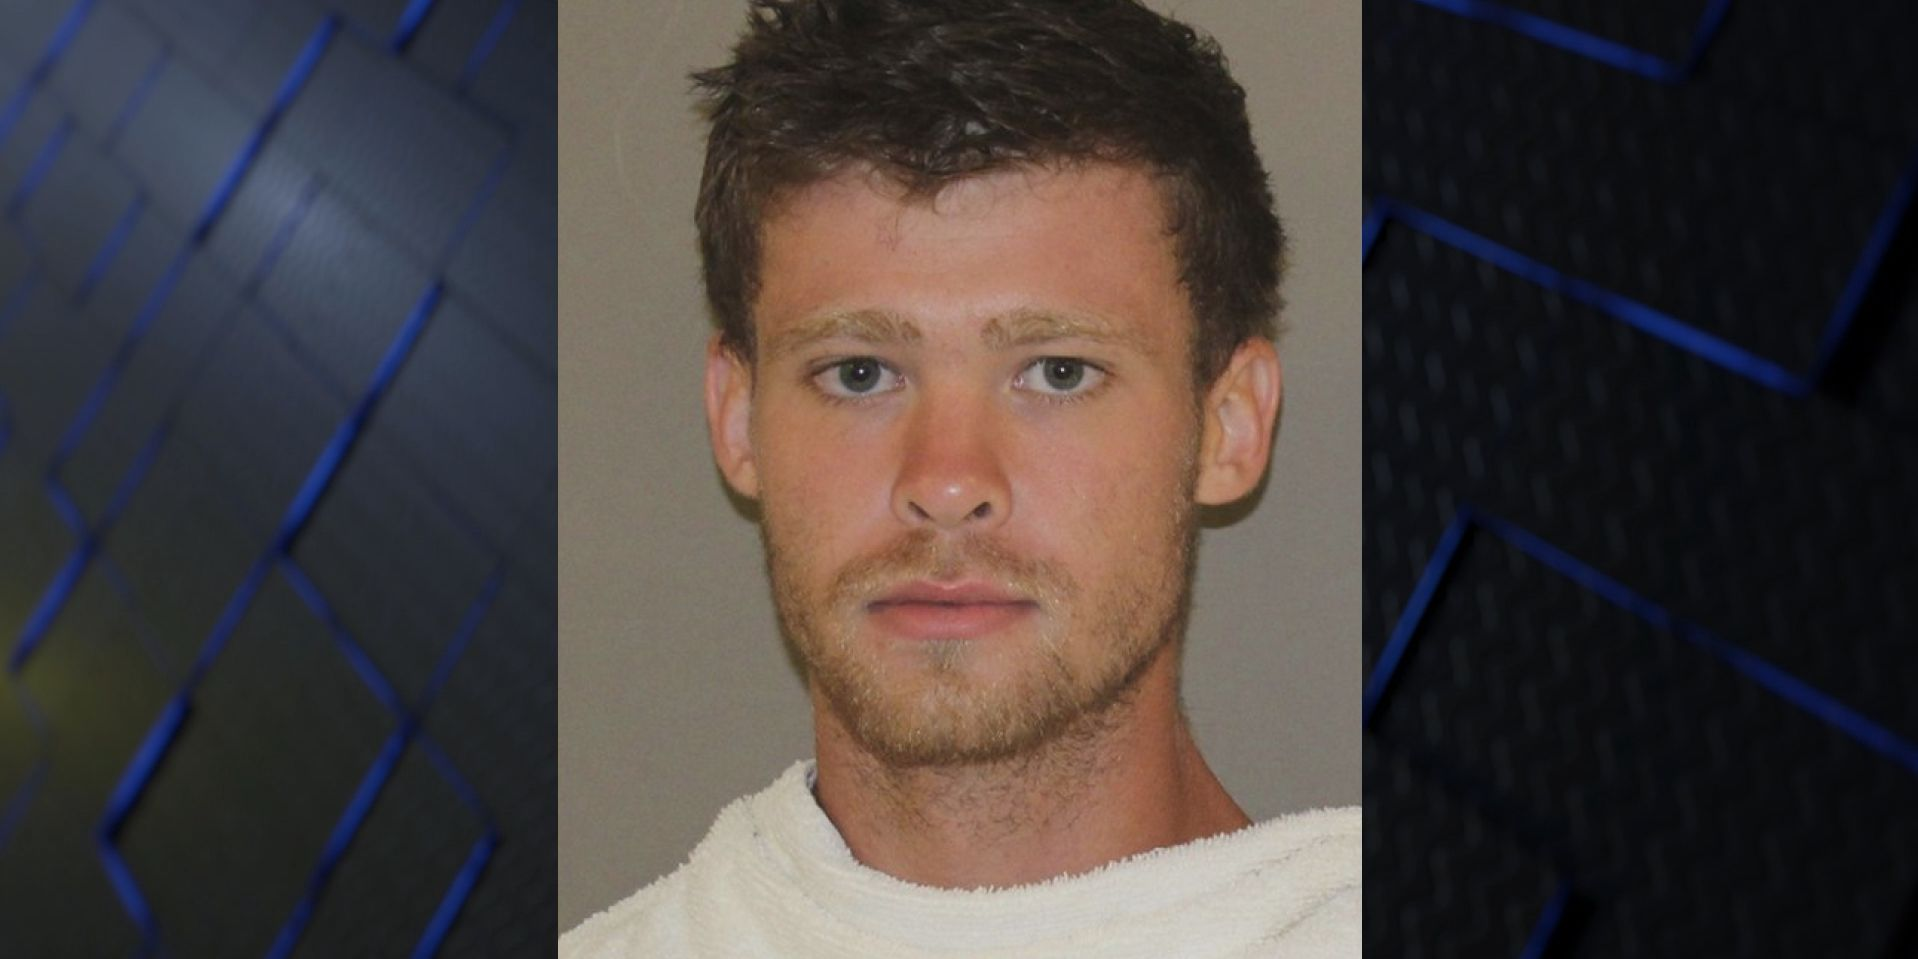 Oklahoma man sought in death of father arrested in Texas